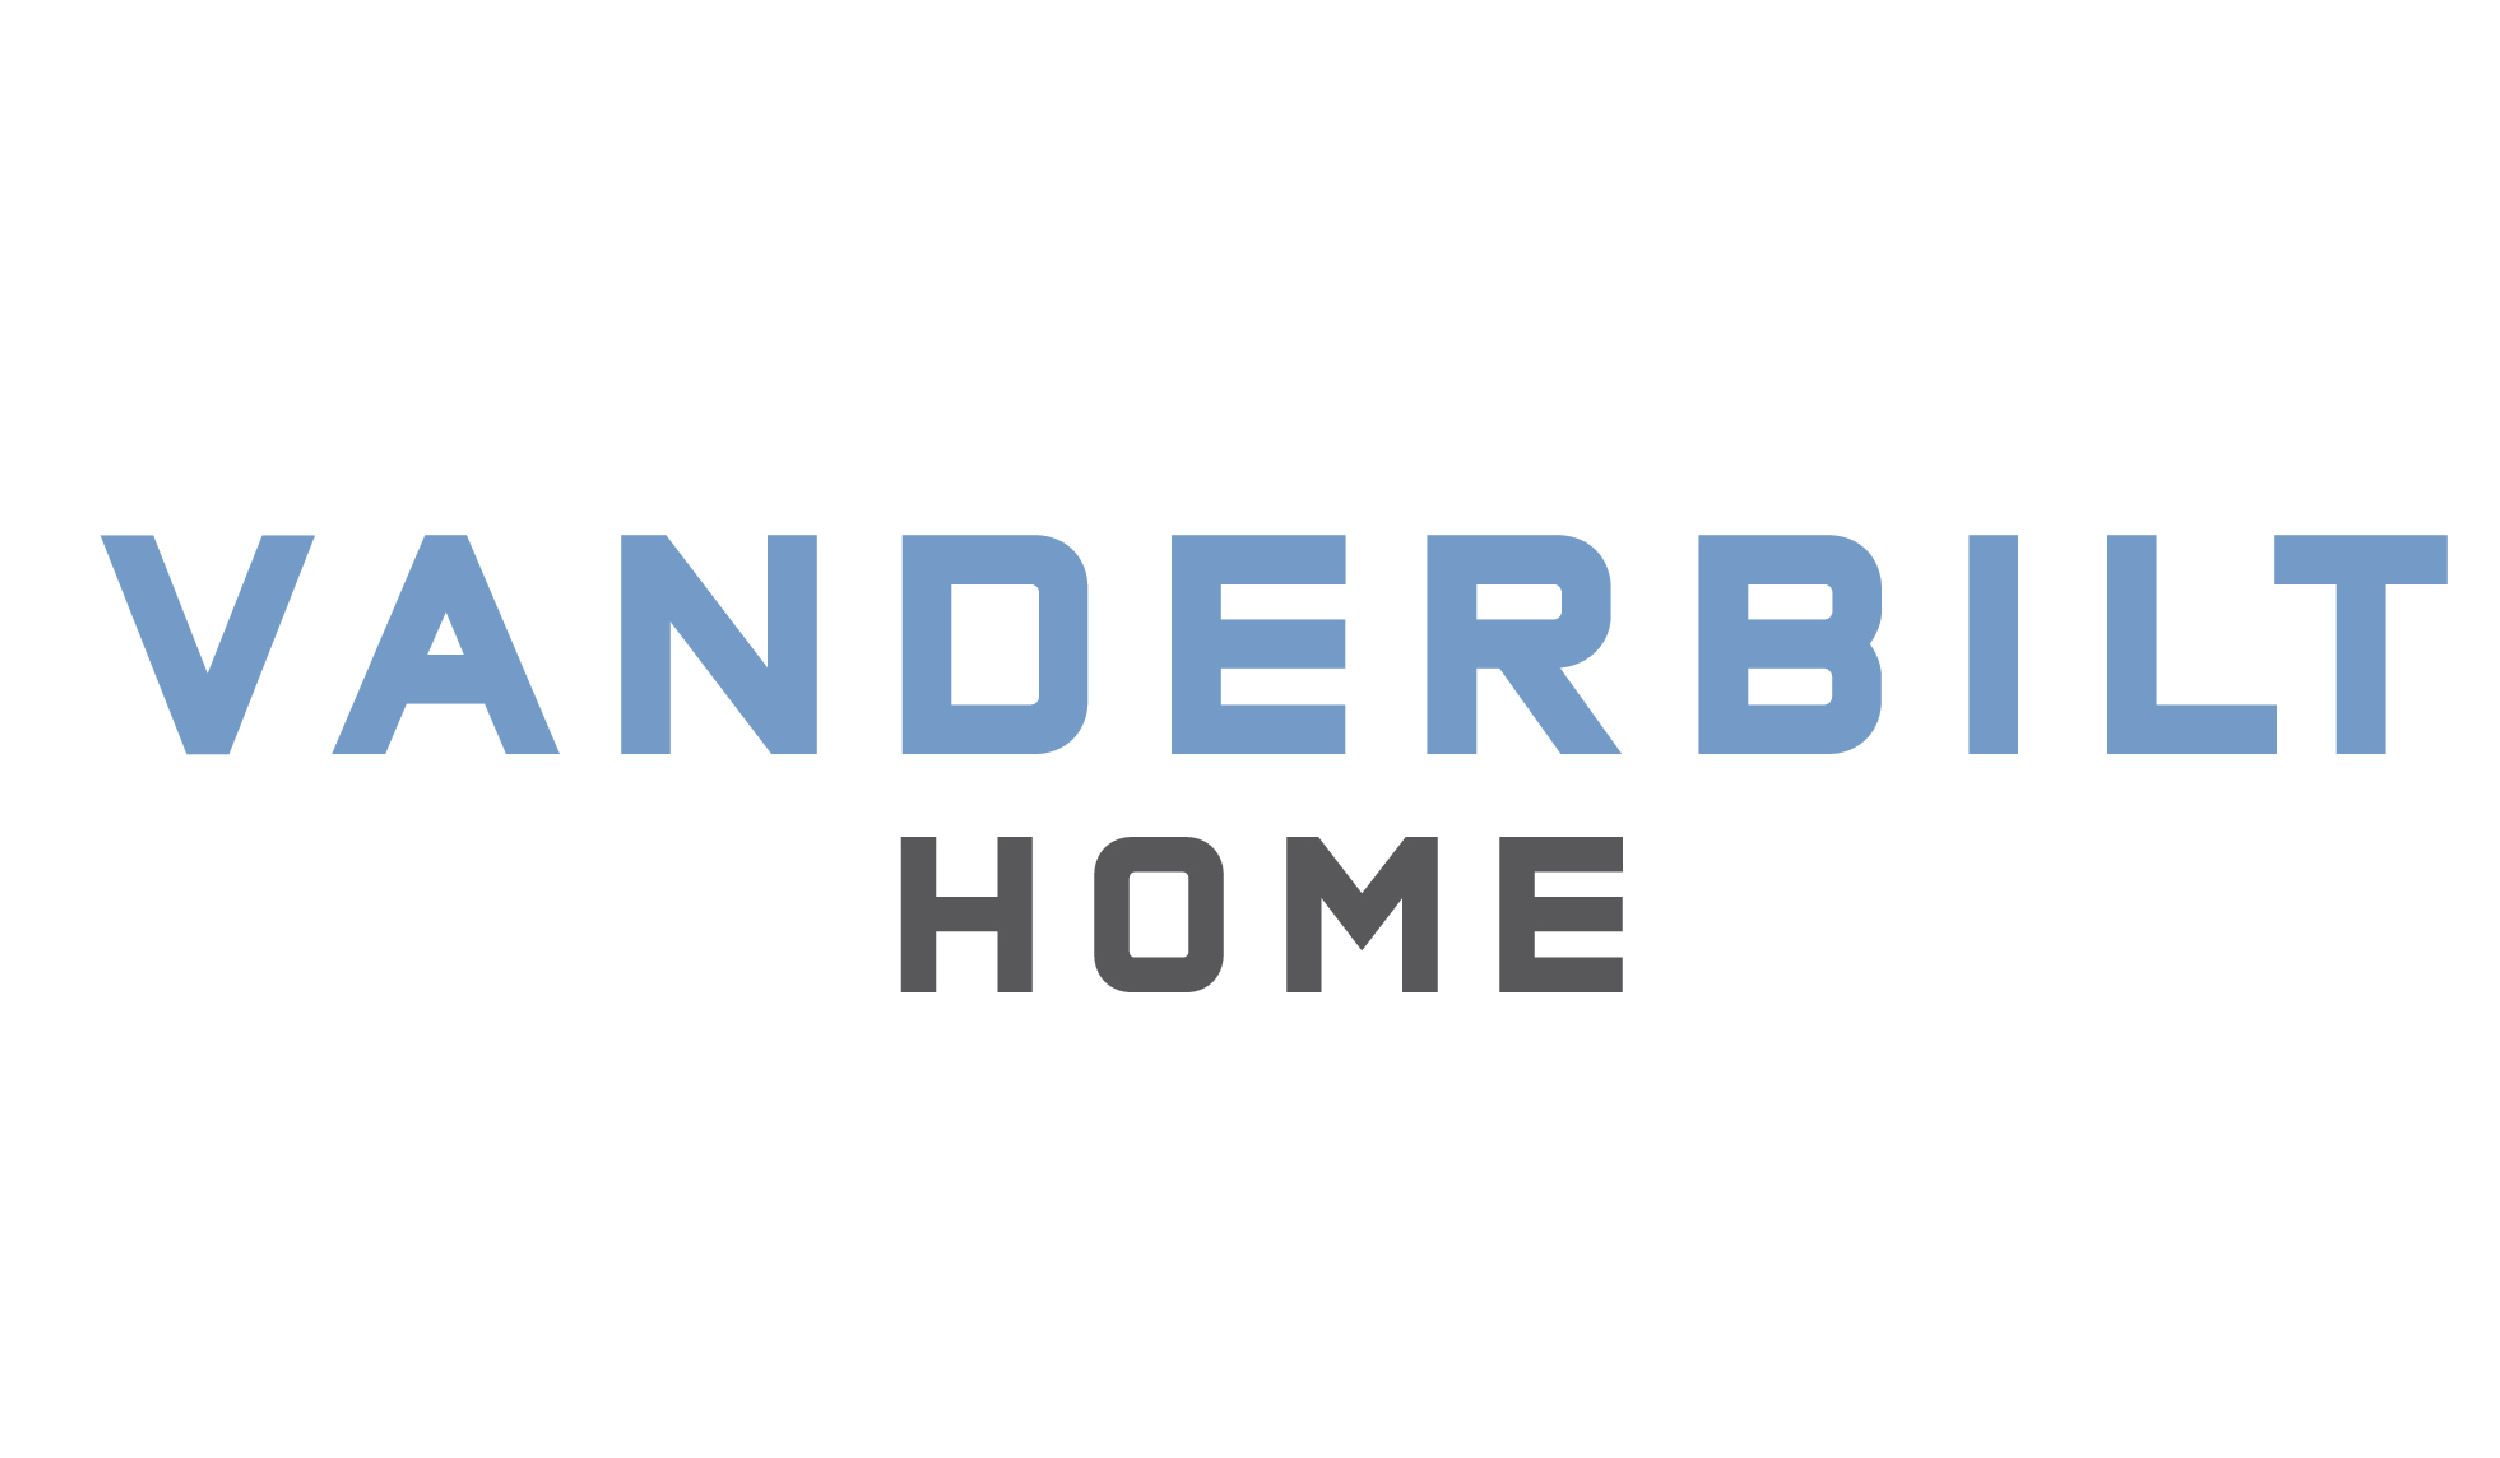 Vanderbilt Home - Features an array of home essentials products, ranging from bath, kitchen, and home storage solutions.